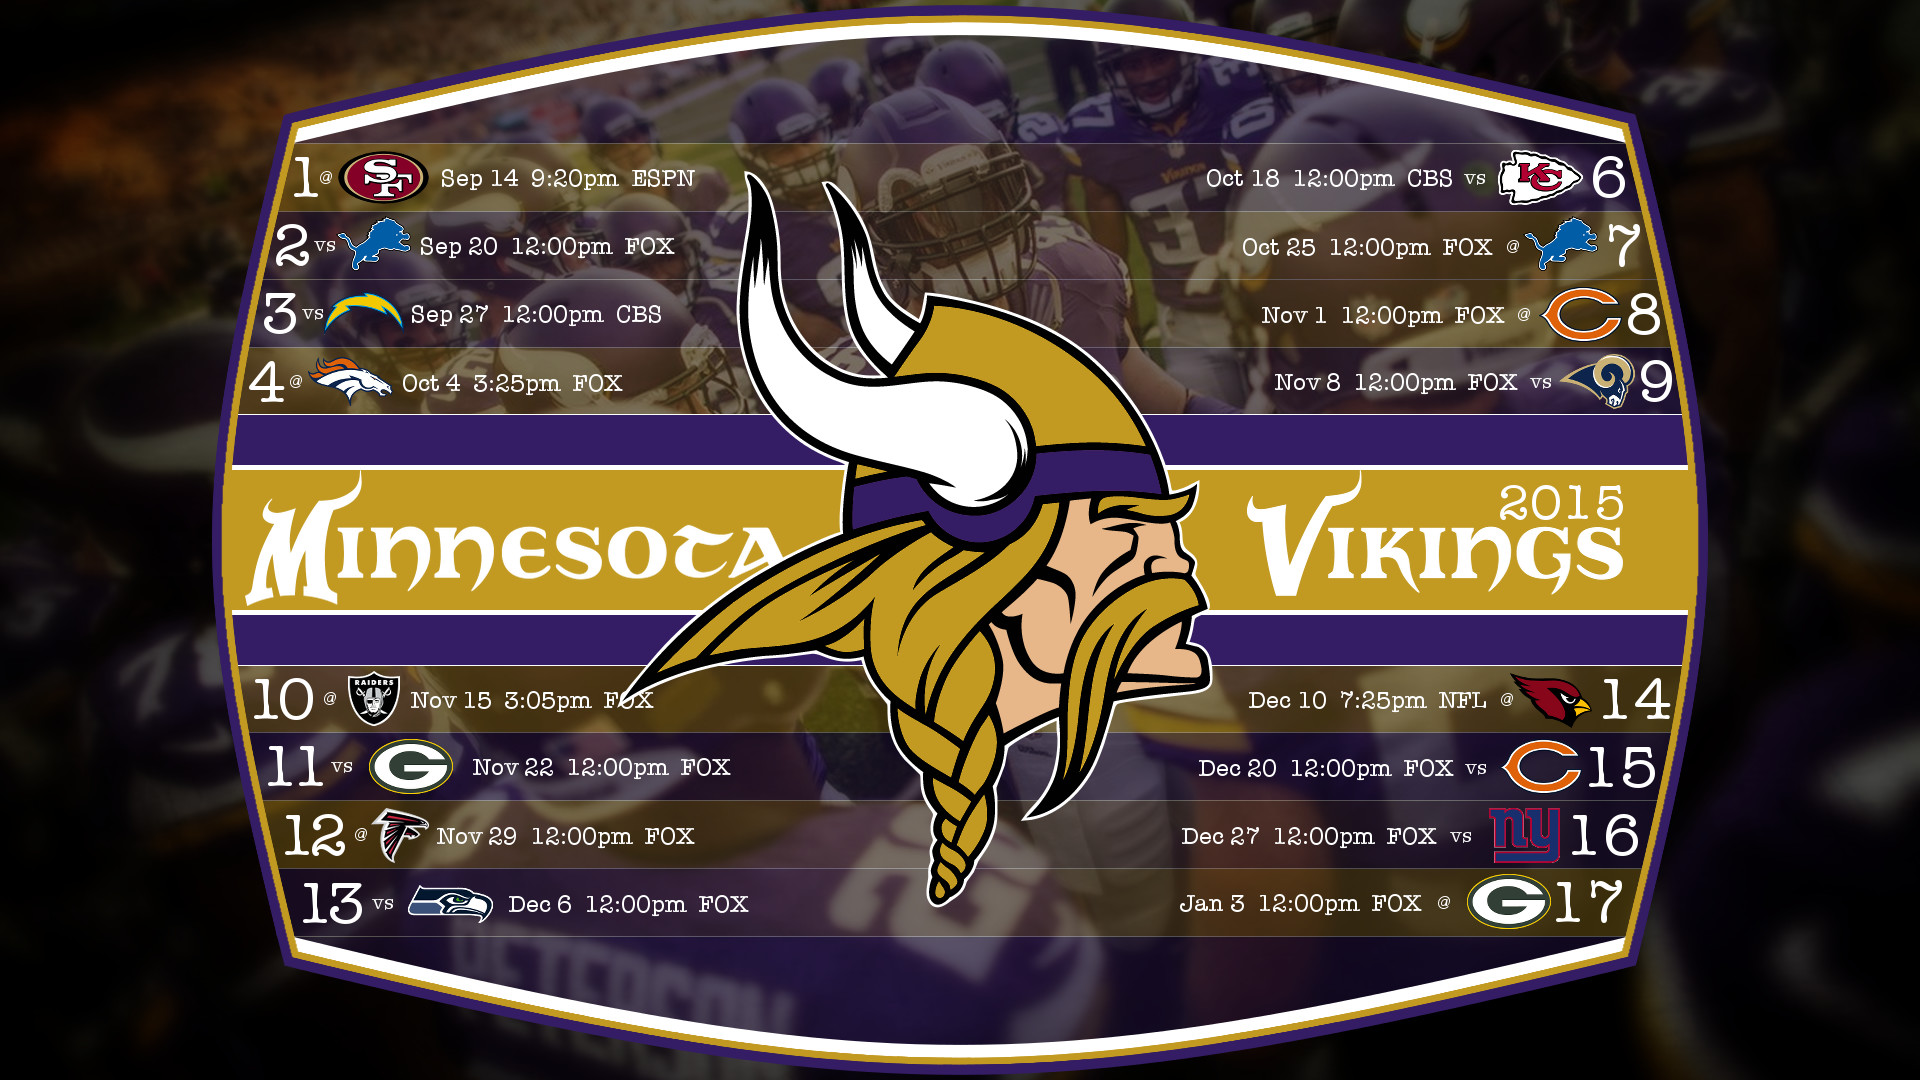 Minnesota Vikings Phone Wallpaper (71+ Images